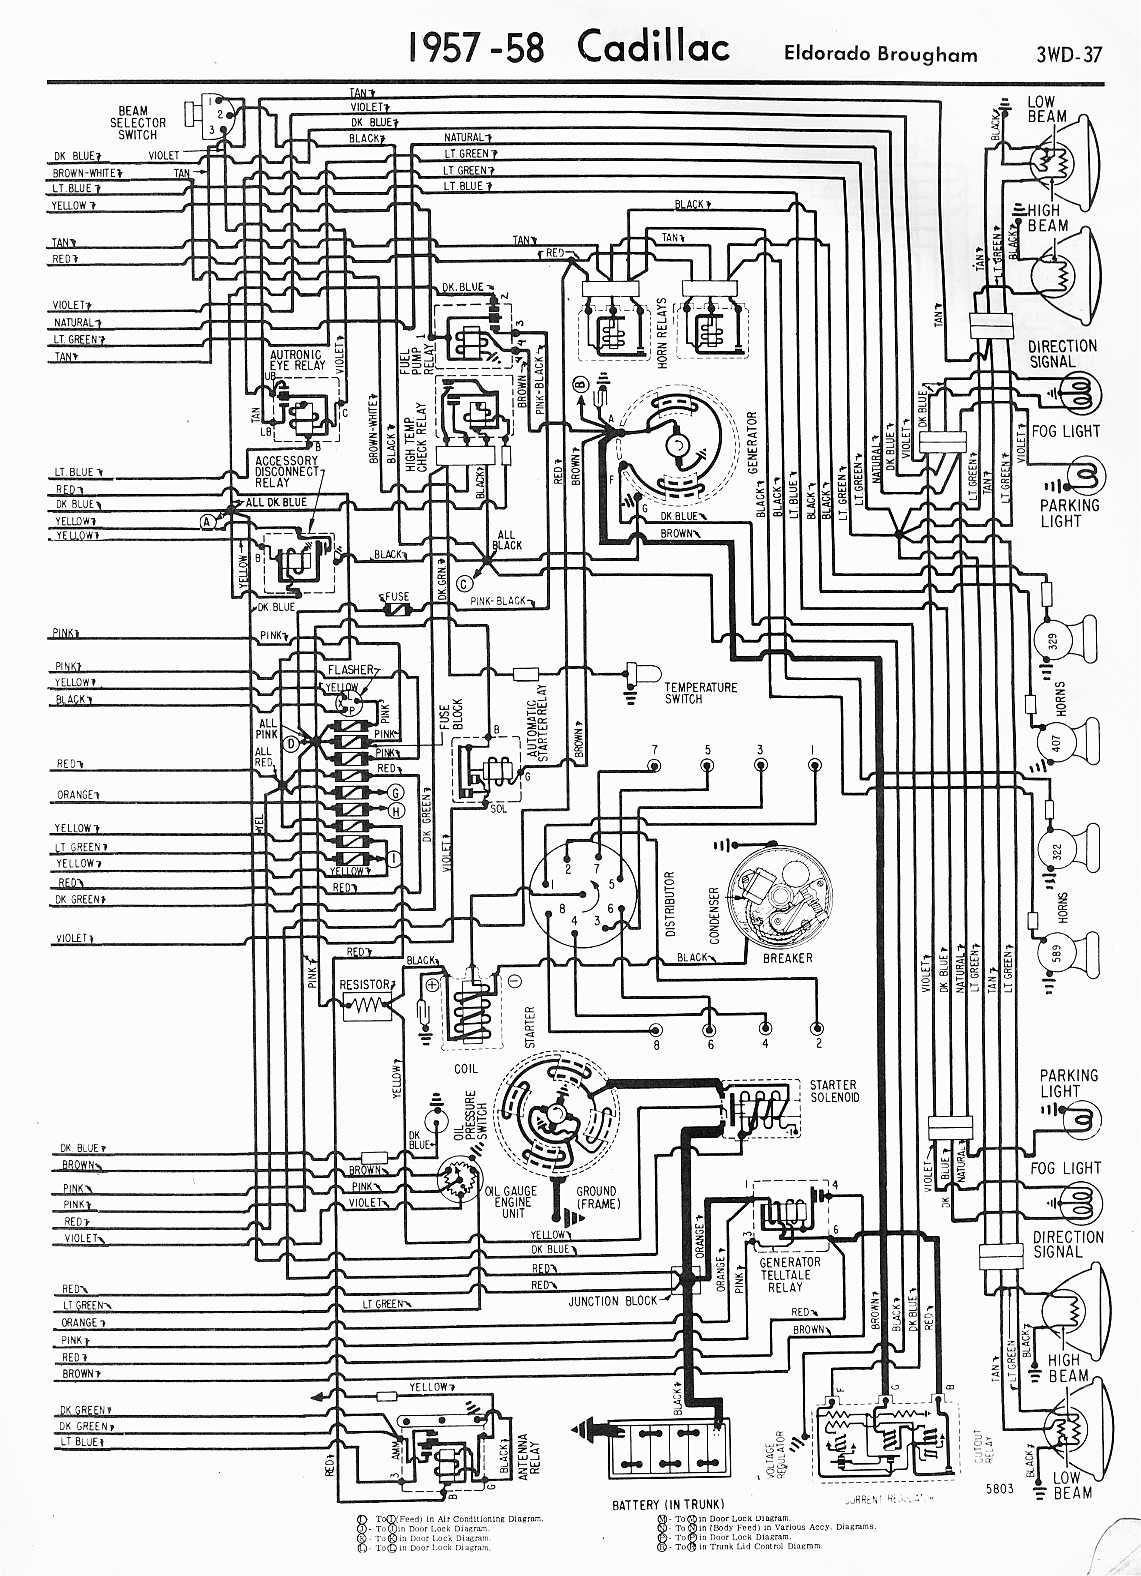 1957 1958+Cadillac+Eldorado+Brougham+Wiring+Diagram 1968 cadillac deville headlight wiring diagram wiring diagram data